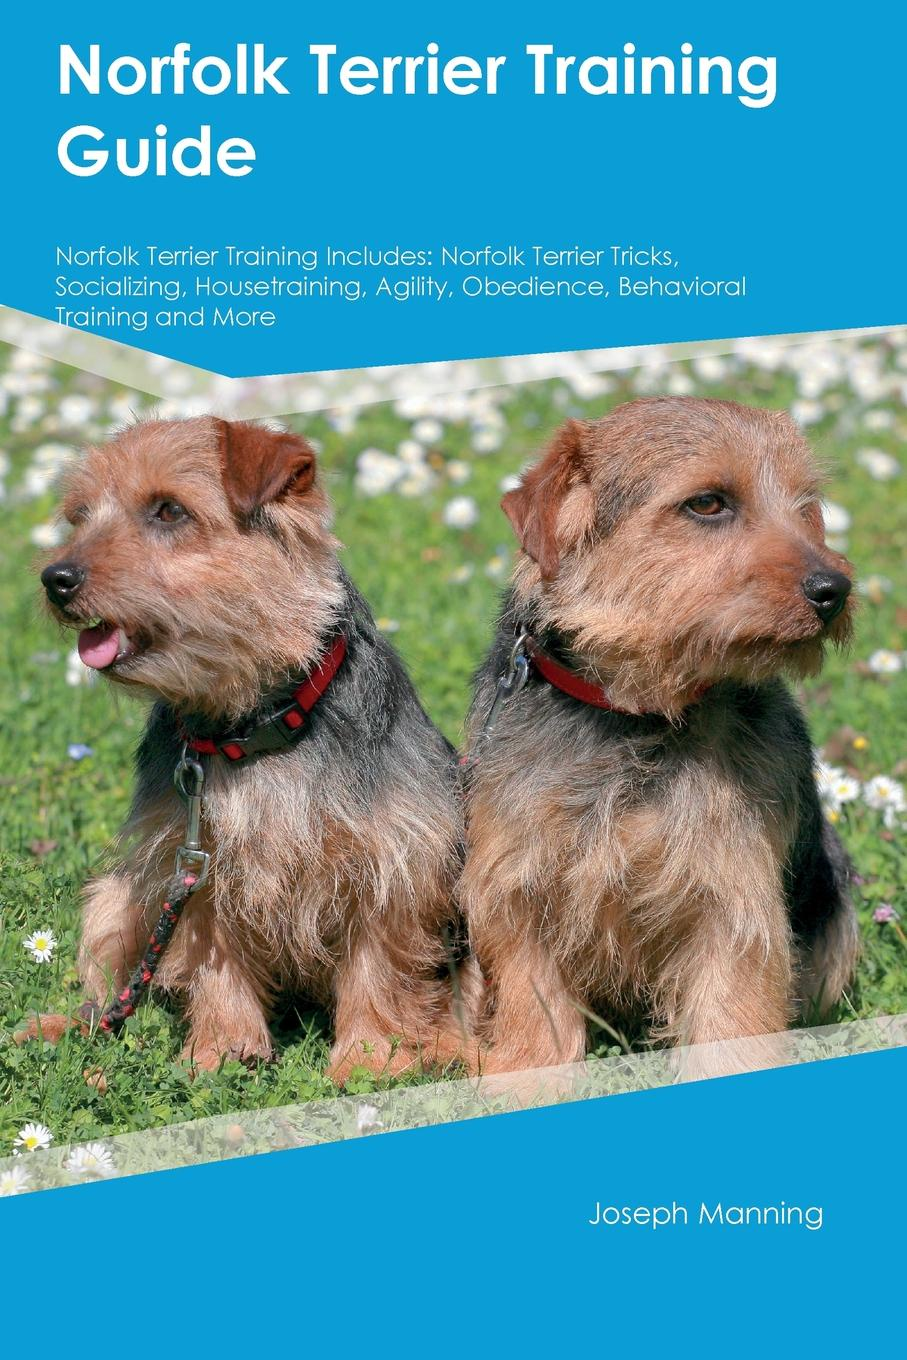 Evan Ball Norfolk Terrier Training Guide Norfolk Terrier Training Includes. Norfolk Terrier Tricks, Socializing, Housetraining, Agility, Obedience, Behavioral Training and More john glyde the norfolk garland a collection of the superstitious beliefs and practices proverbs curious customs ballads and songs of the people of norfolk or peculiarities of norfolk celebrities